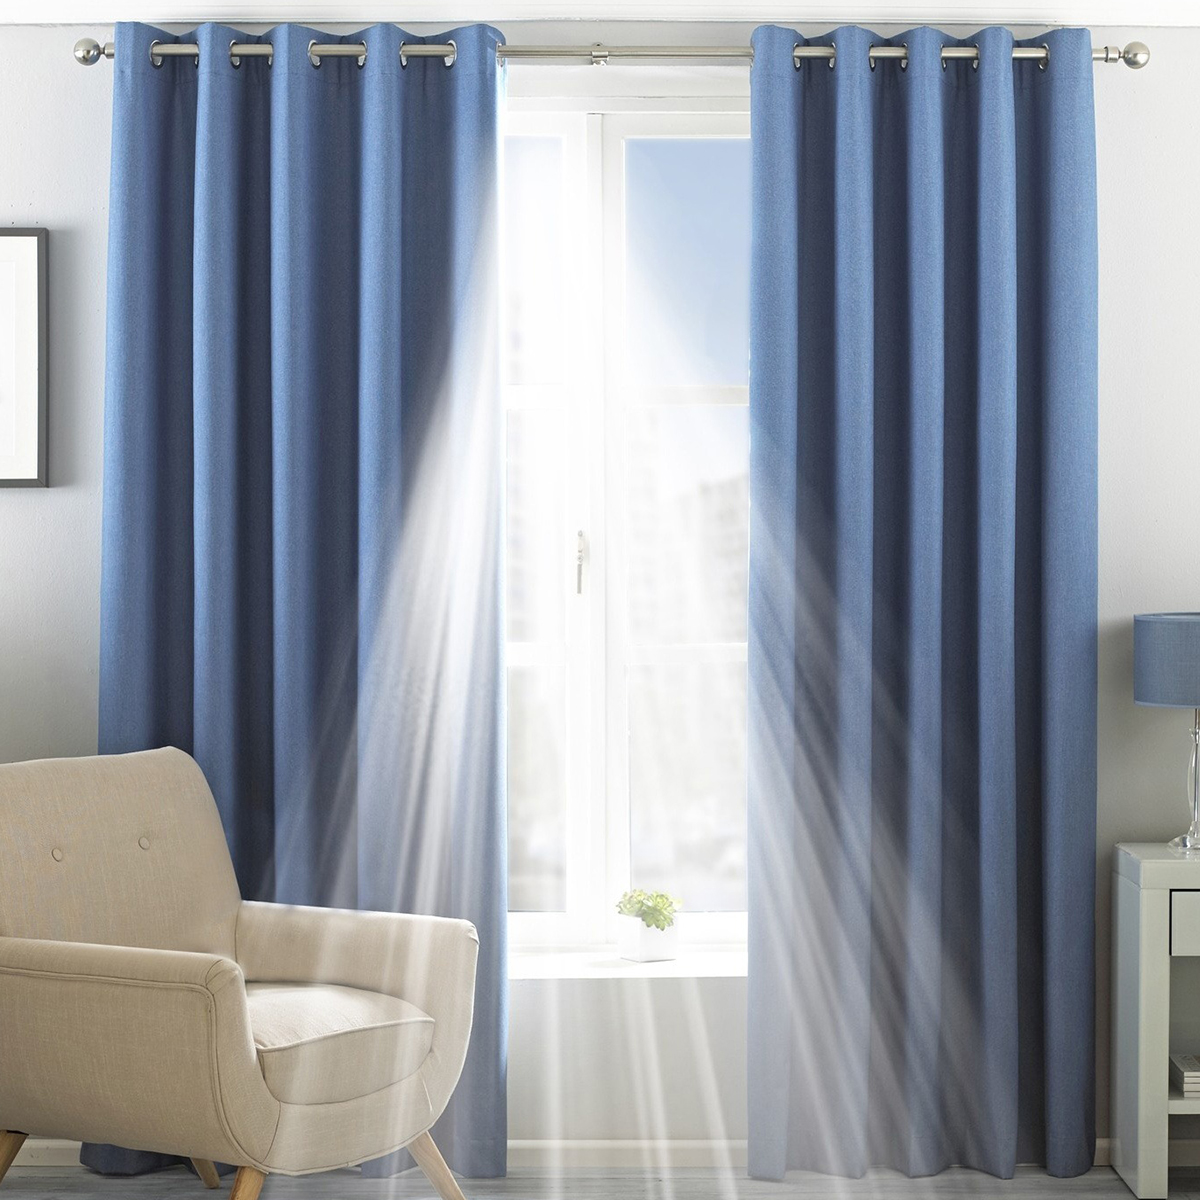 Riva Home Eclipse Blackout Eyelet Curtains (RV1083)